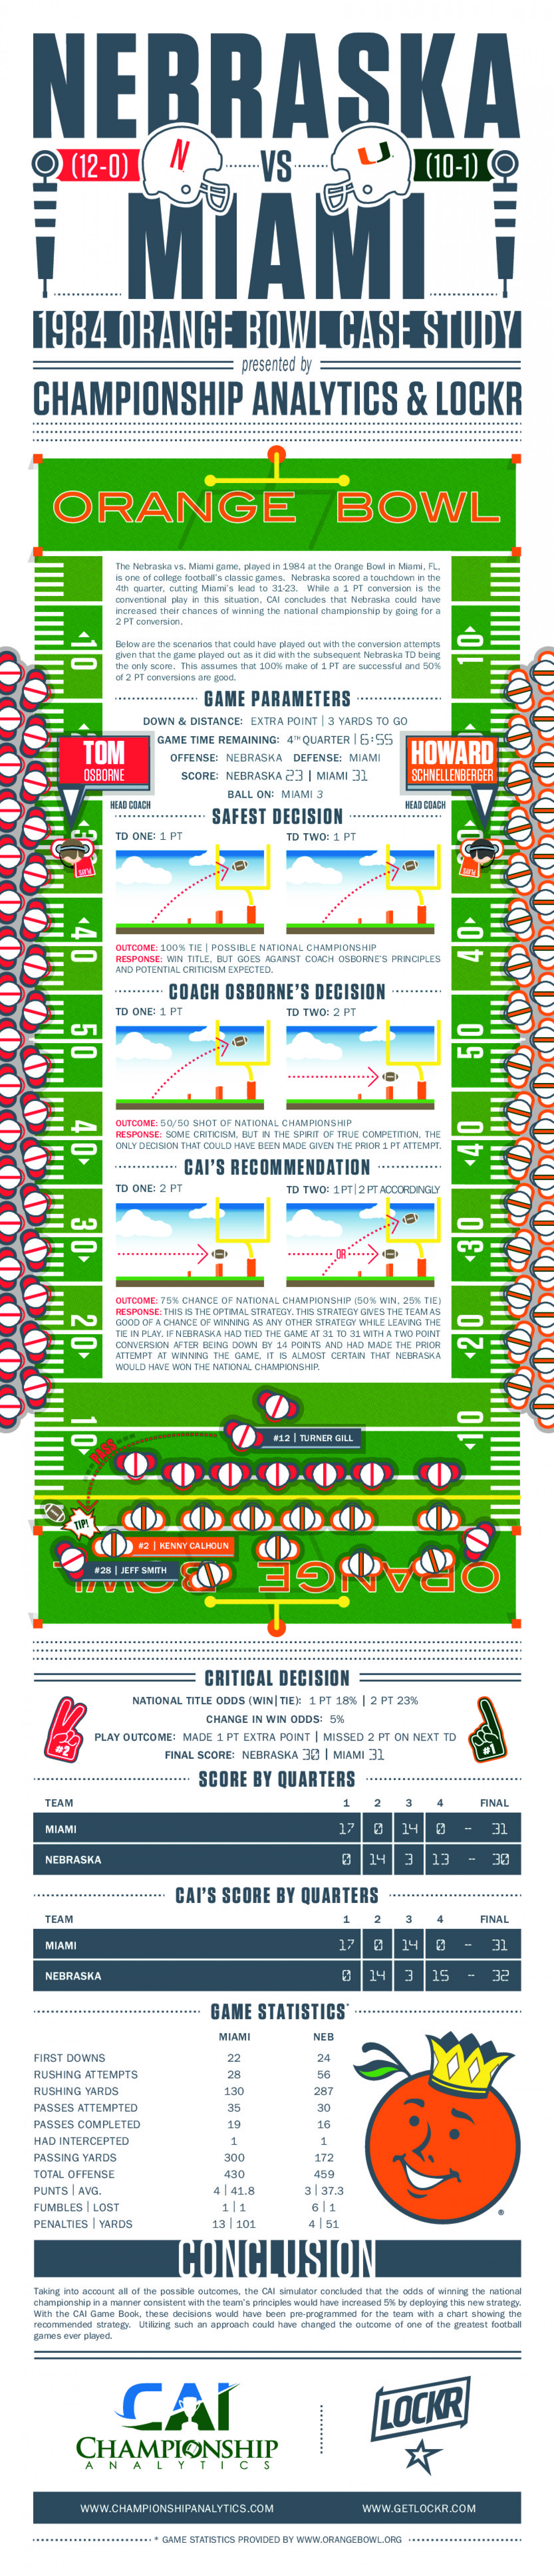 1984 Orange Bowl Infographic